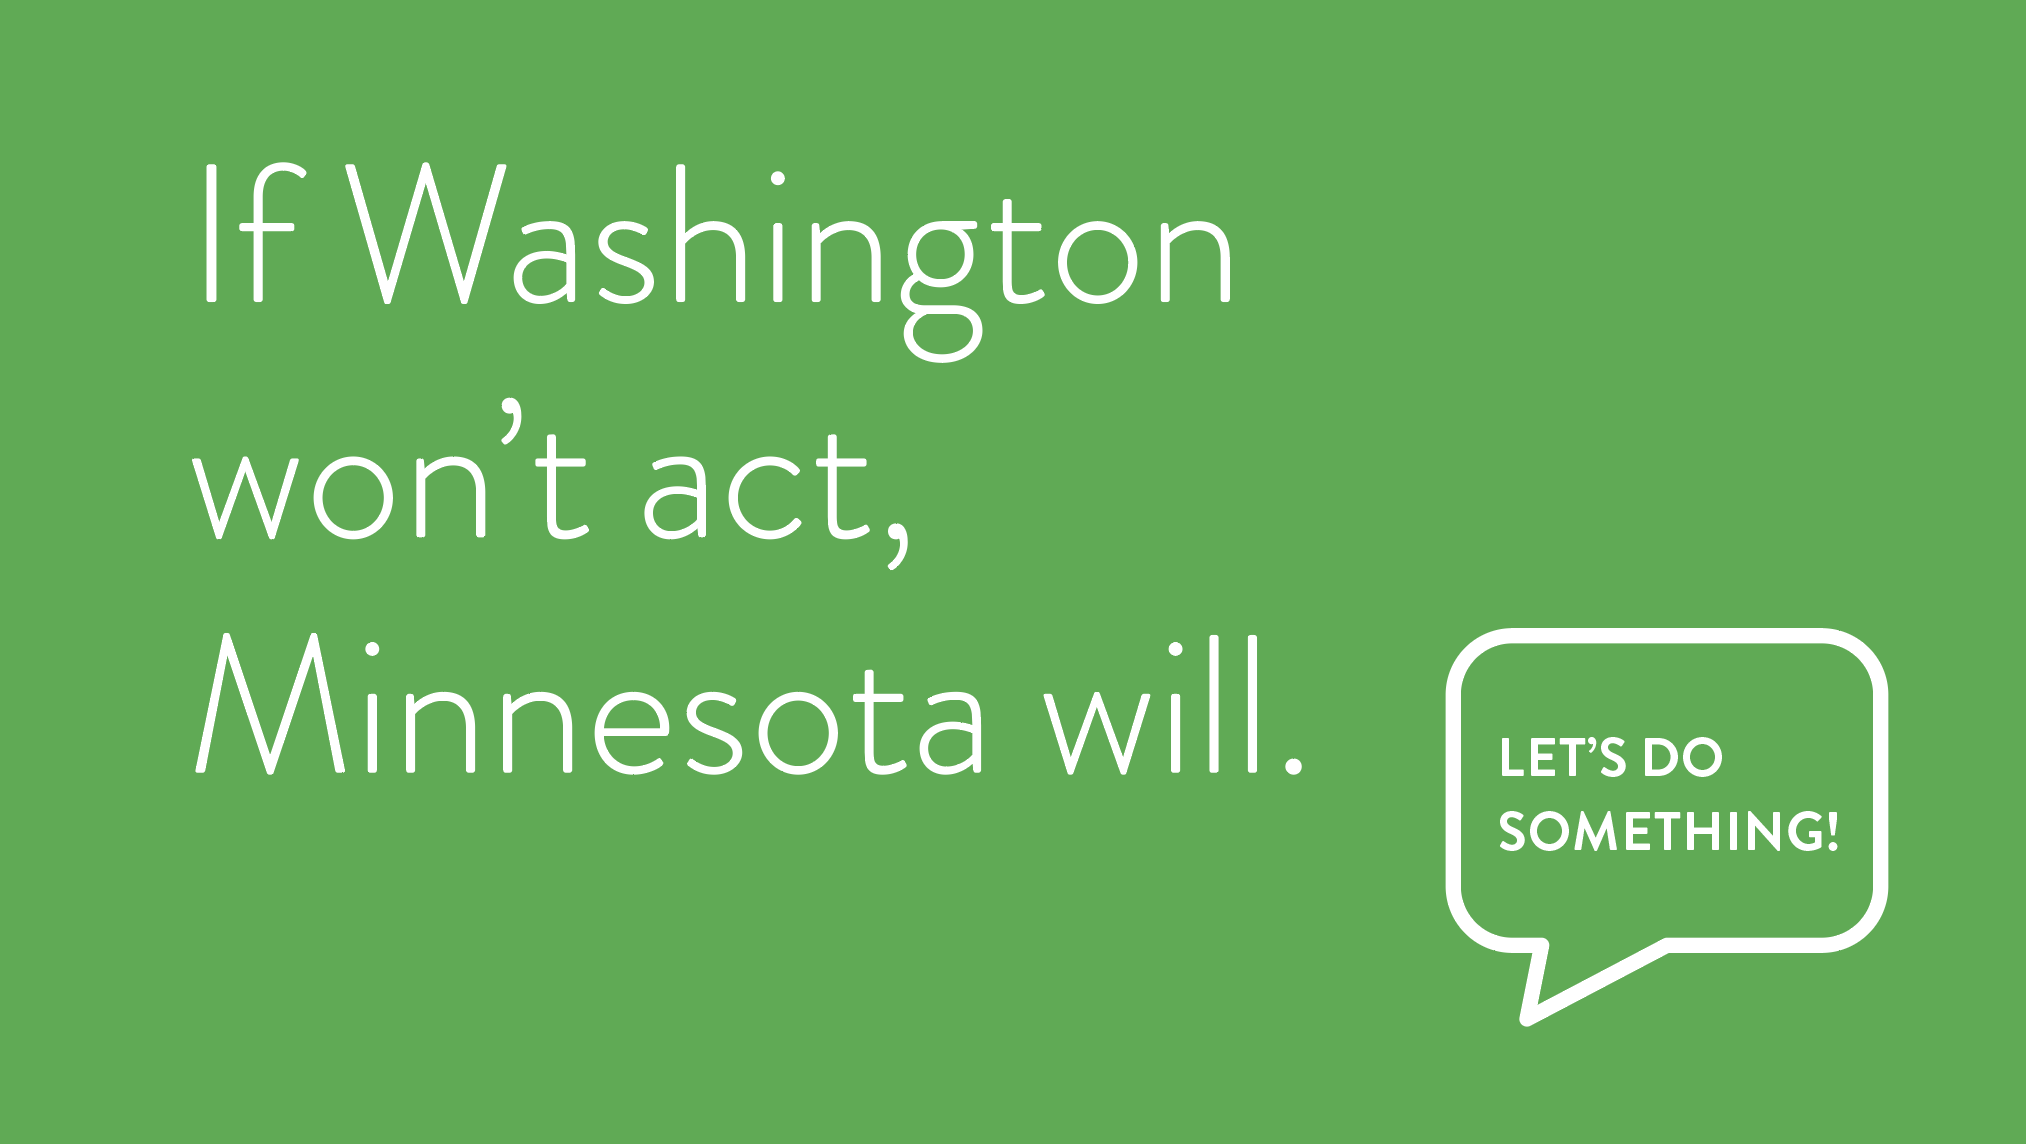 If Washington won't act, Minnesota will. Let's do something!